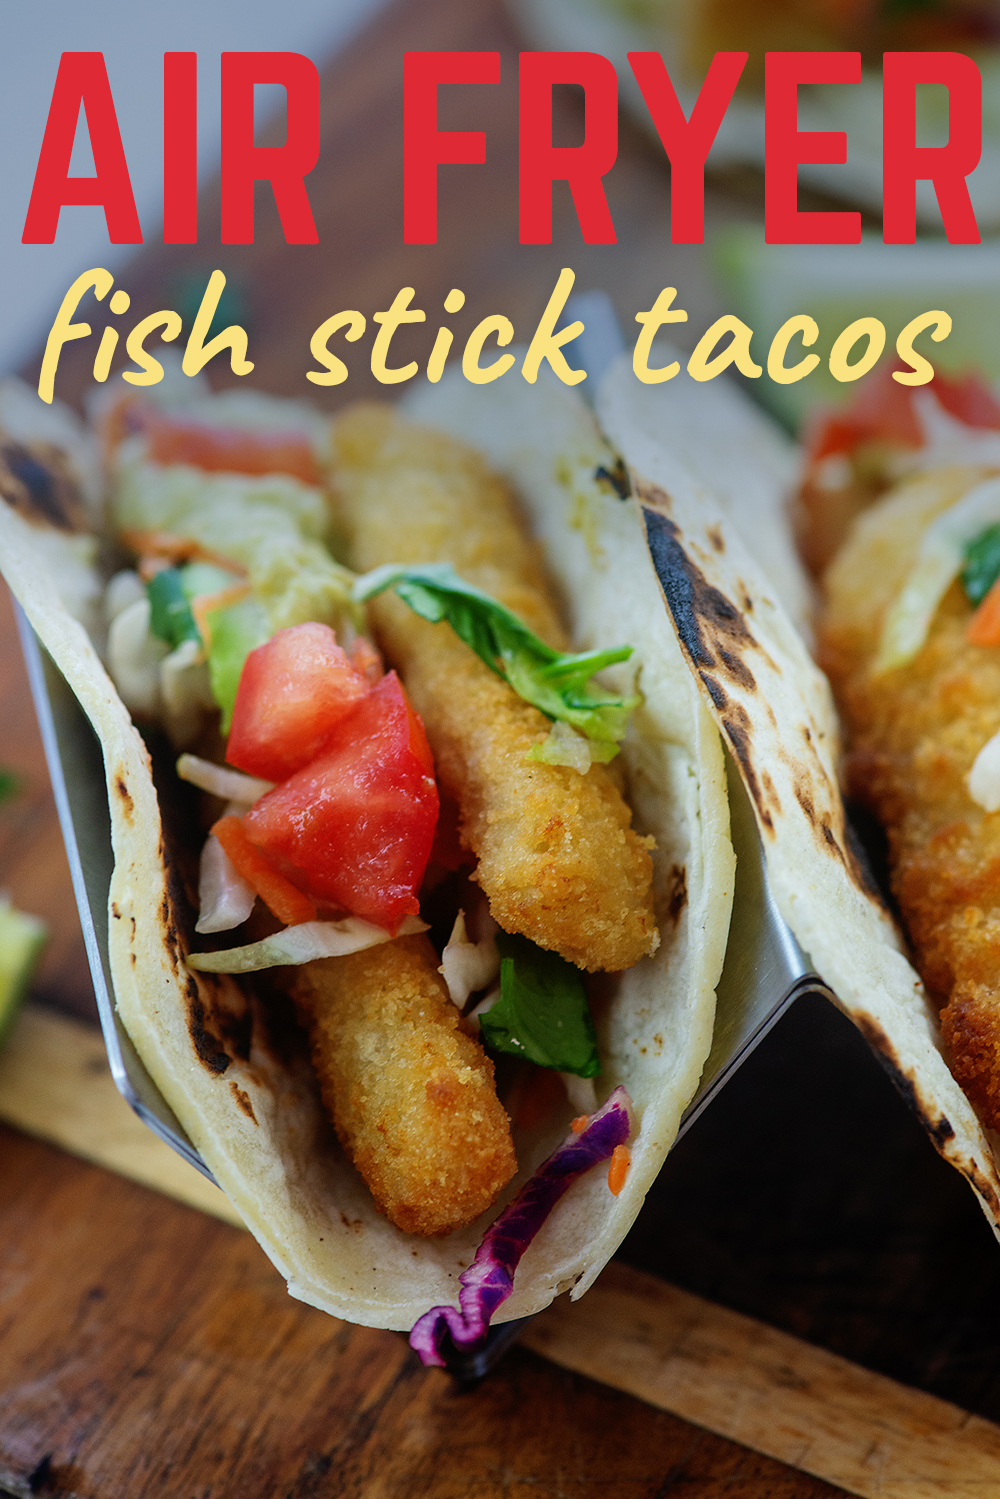 These fish tacos are topped with a lovely cilantro lime slaw.  A perfect pairing for the crispy fish!